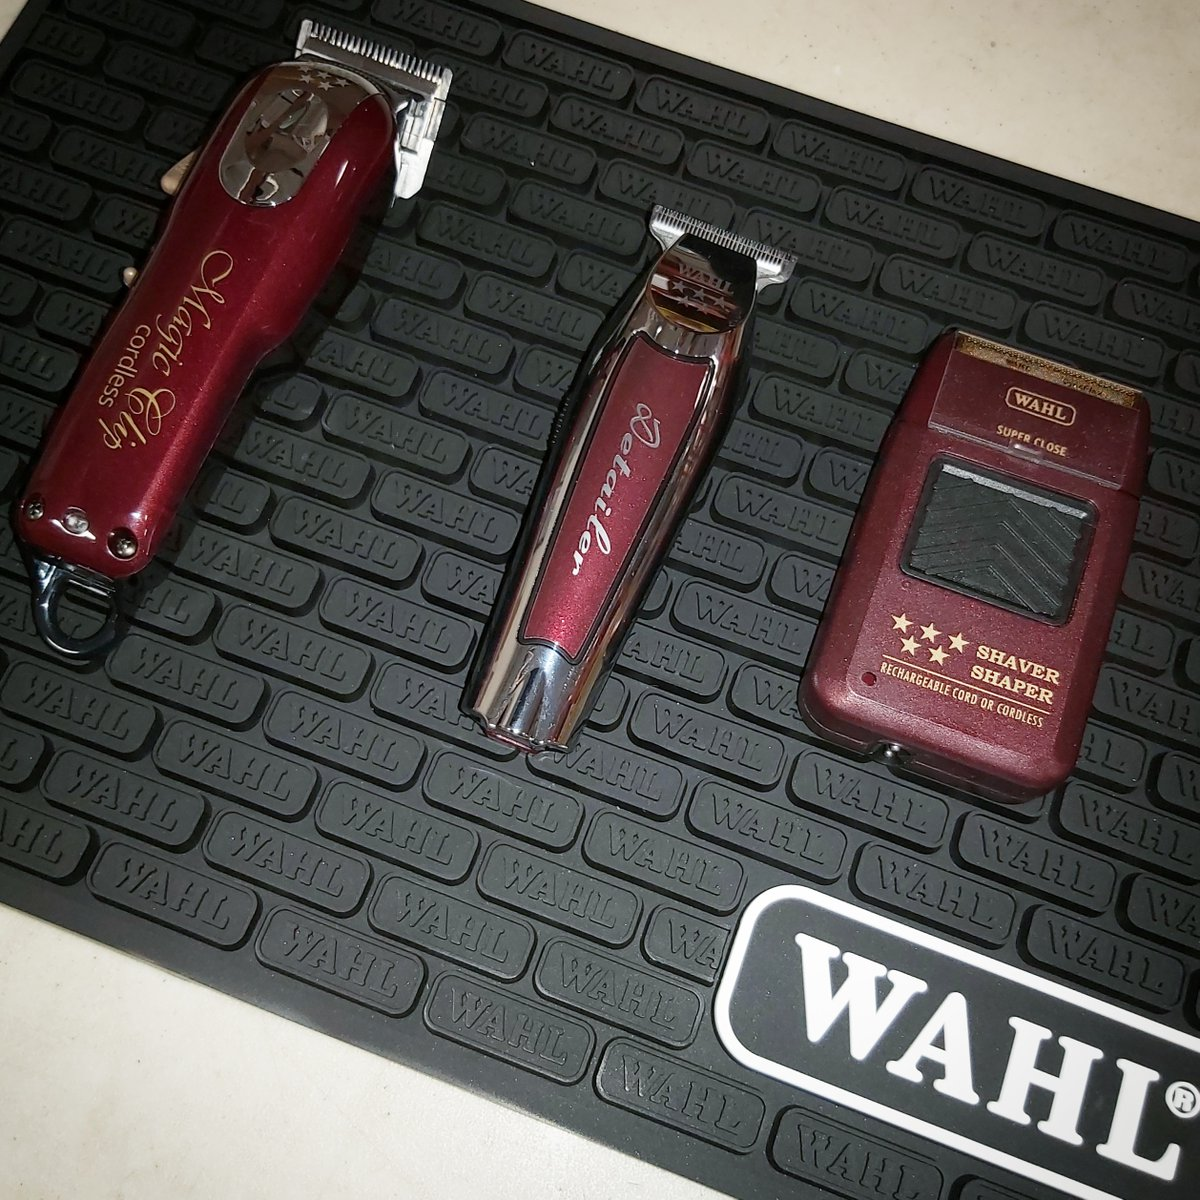 The #AllWahl trio! Featuring...  • Wahl 5 Star Cordless Magic Clip • Wahl 5 Star Cordless Detailer LI • Wahl 5 Star Shaver/Shaper  Which one is your go-to Wahl tool?   #AllWahl #WahlLove #fades #lineups #blurryfades #fadehaircut #barberworld #barbers #wahloffamepic.twitter.com/IaGQH4ETd9